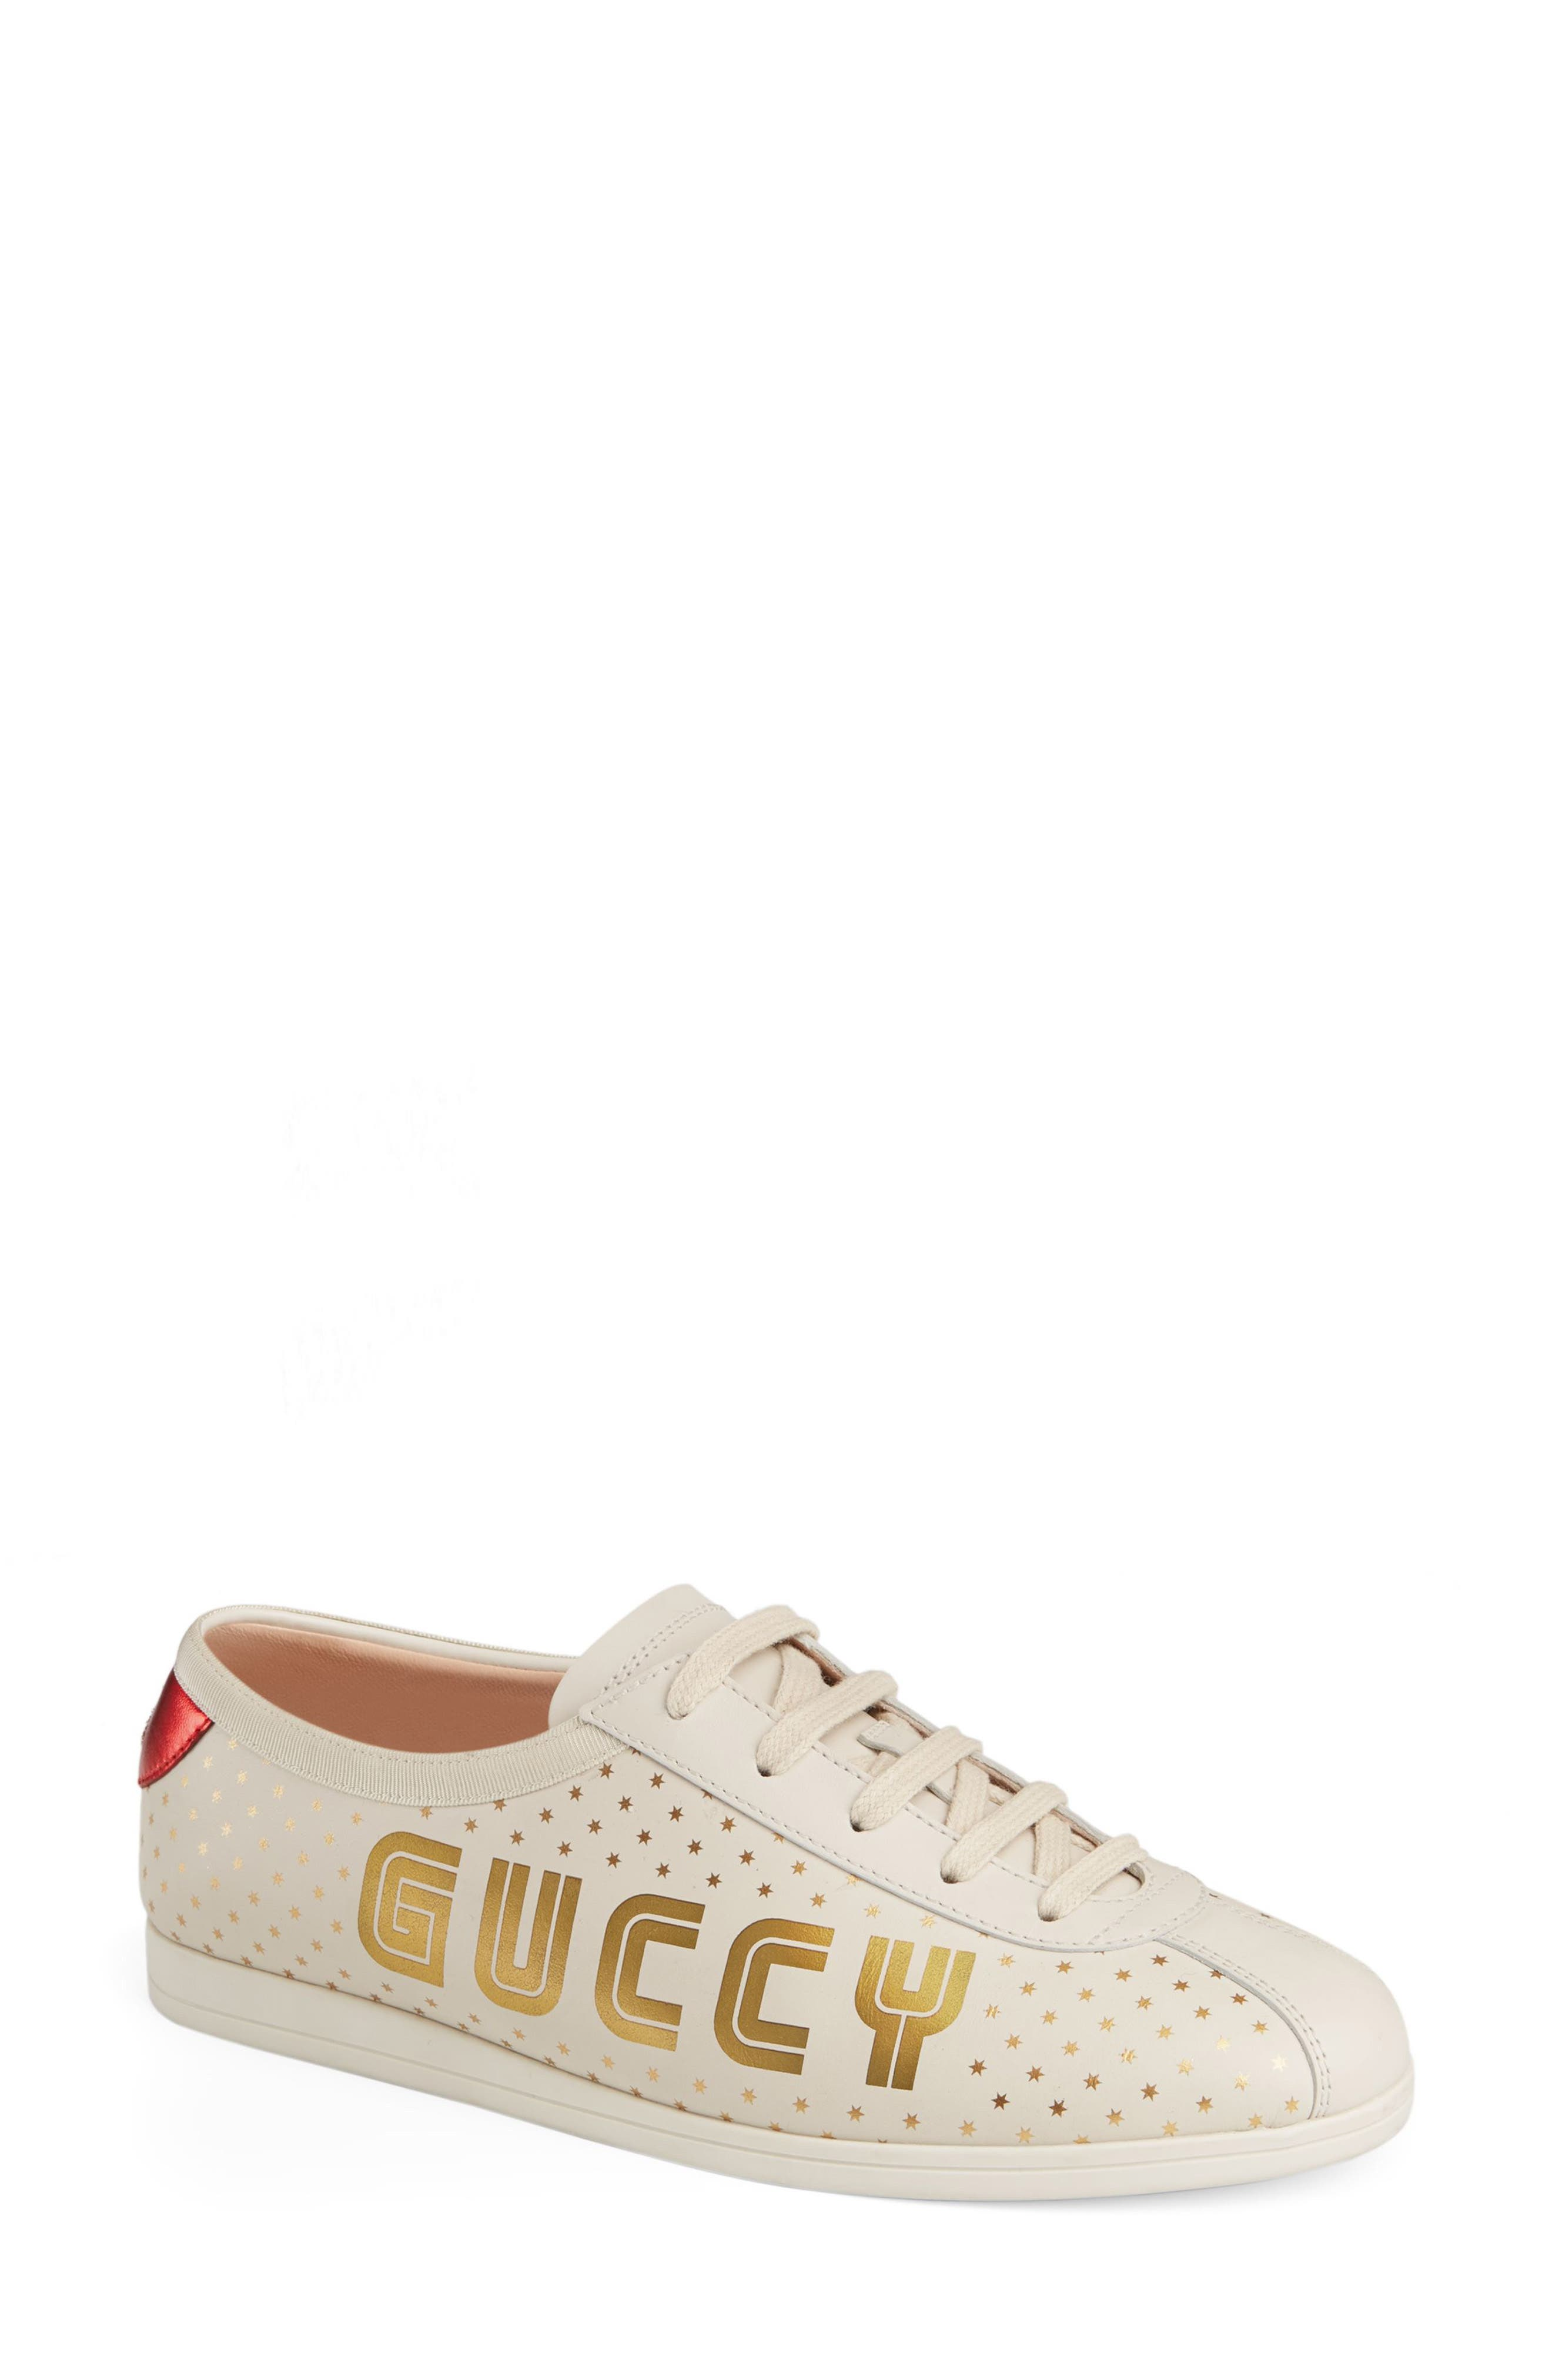 Falacer Guccy Logo Sneaker,                         Main,                         color, White